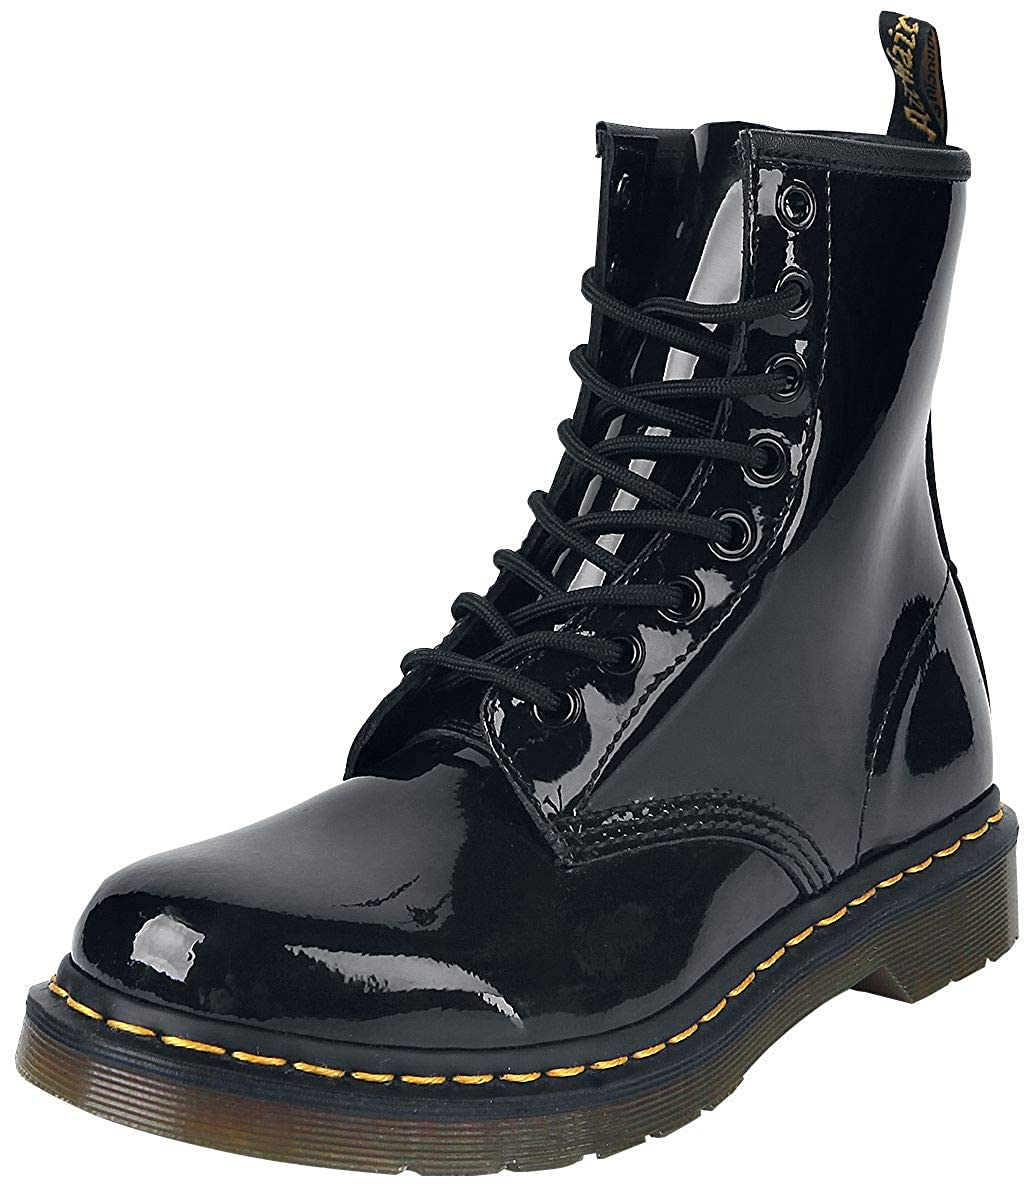 b817ffb51a1 Dr. Martens Women's 1460 8 Eyelet Patent Leather Lace-Up Boot Black